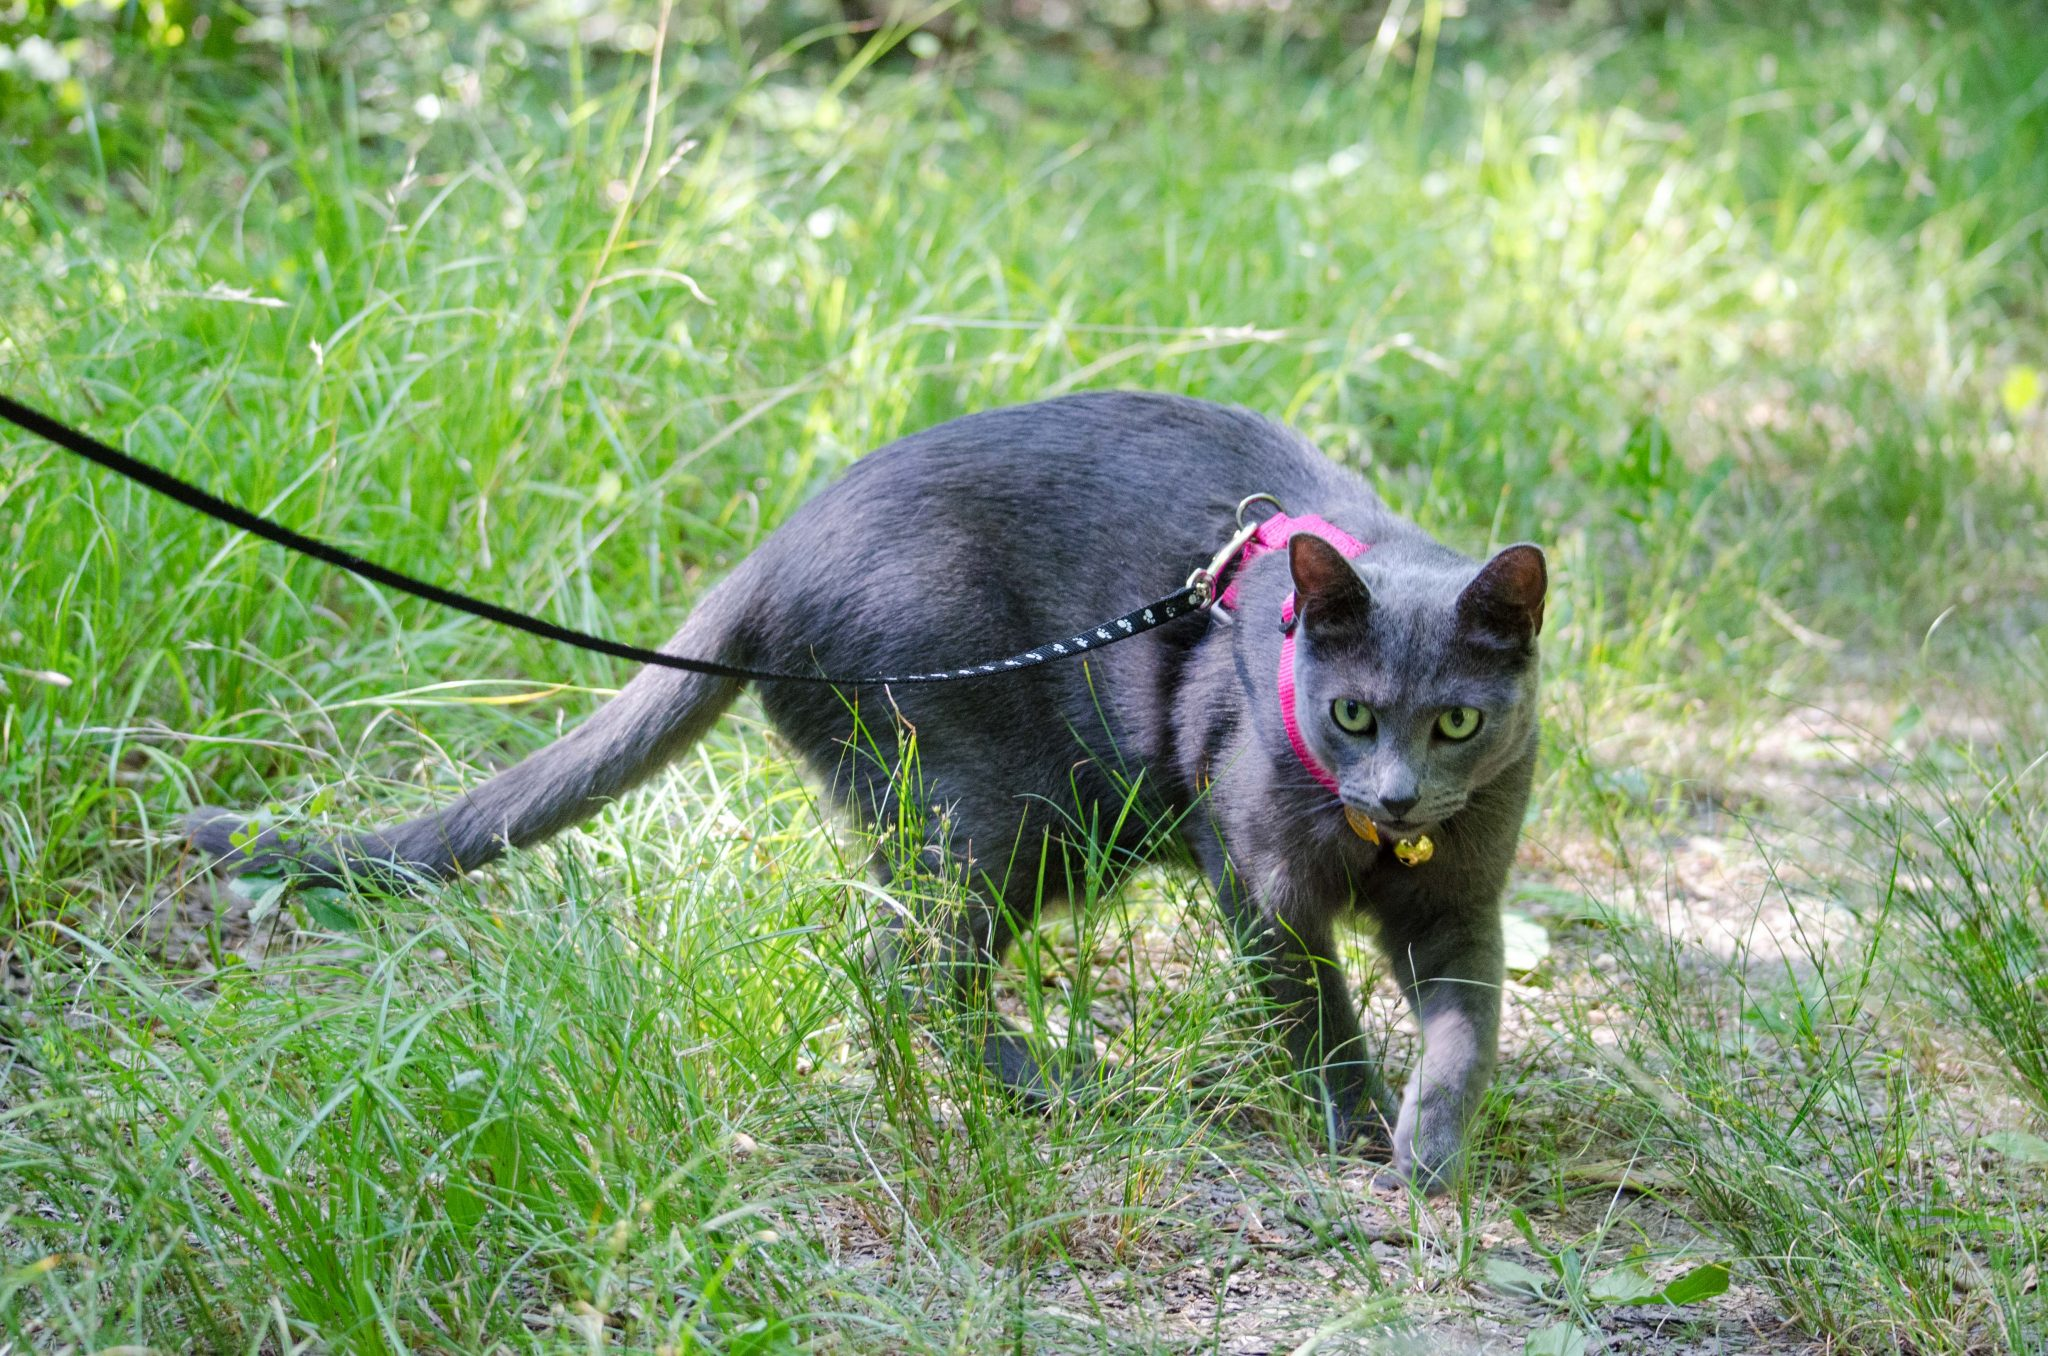 Shade the cat on a leash